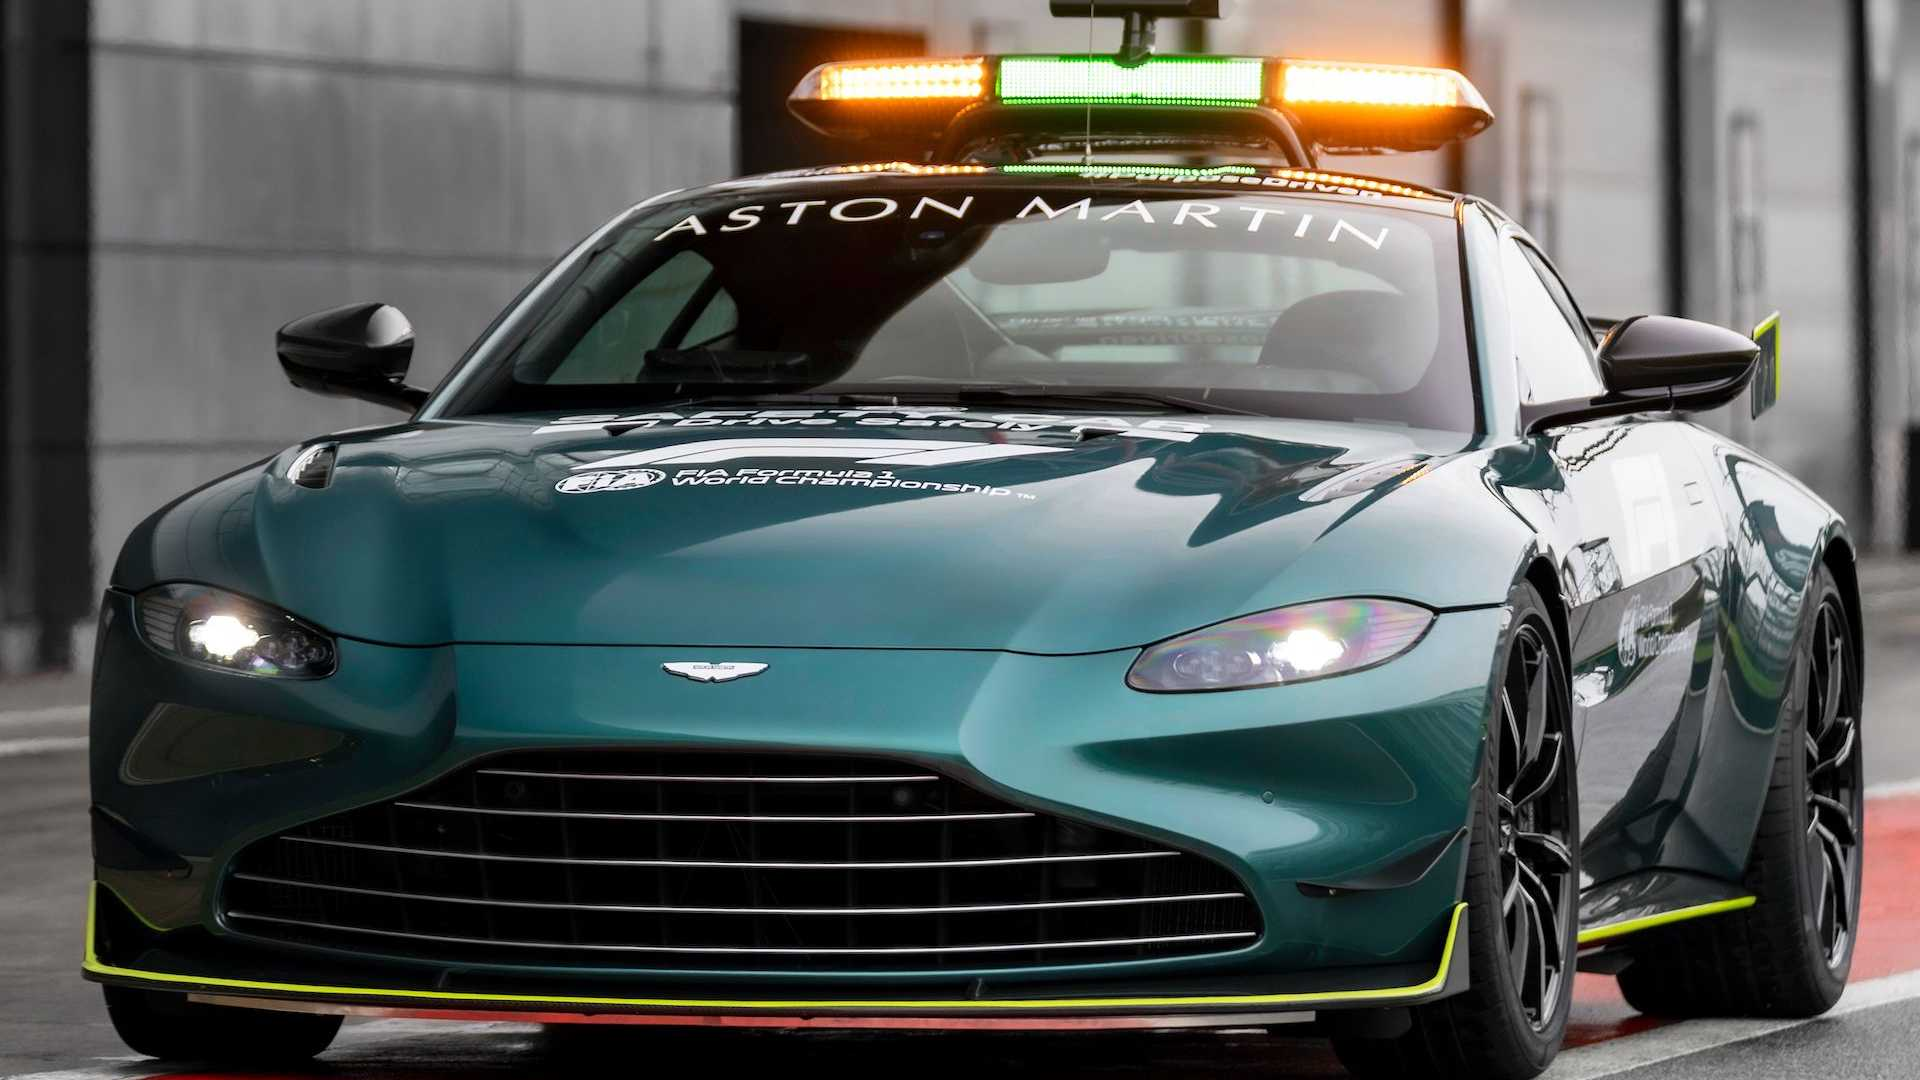 Aston Martin Shows Off Official F1 Safety Medical Cars For 2021 Season